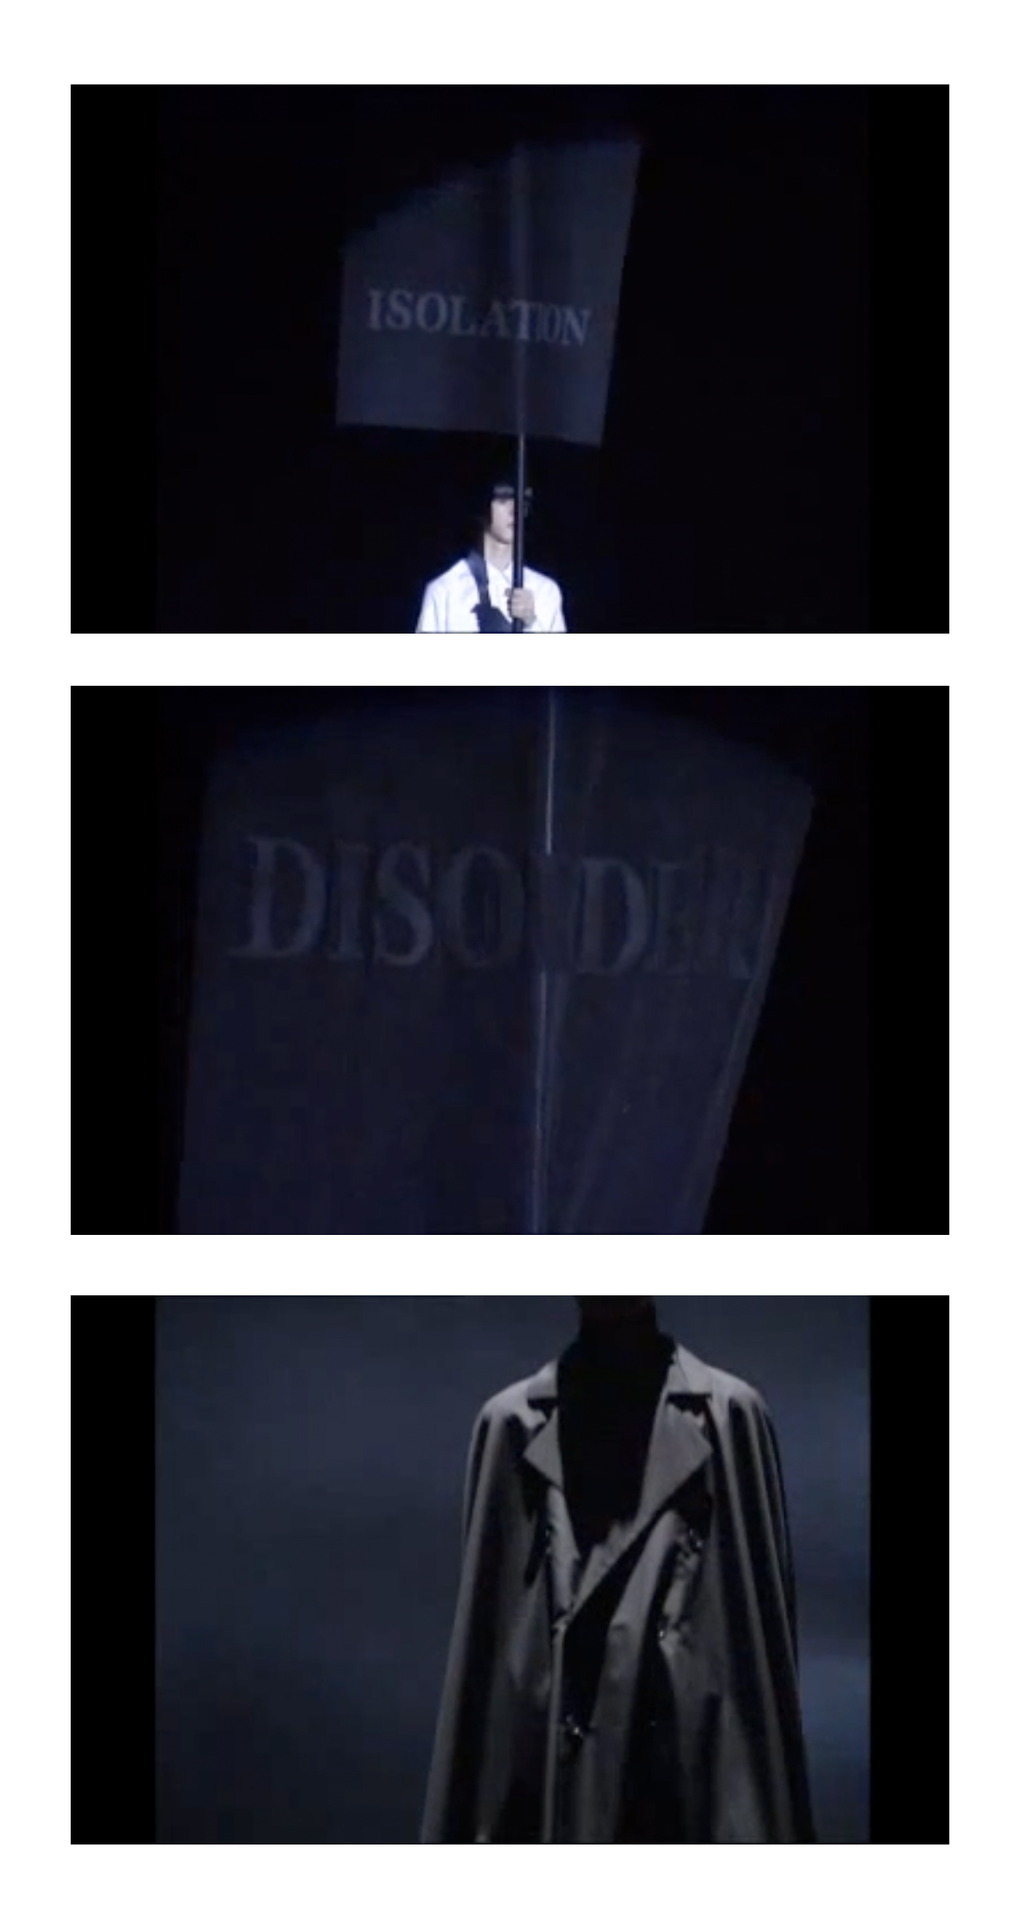 raf simons' disorder-incubation-isolation collection 1999. he's the best. http://www.youtube.com/watch?v=xELz-DFEIwU